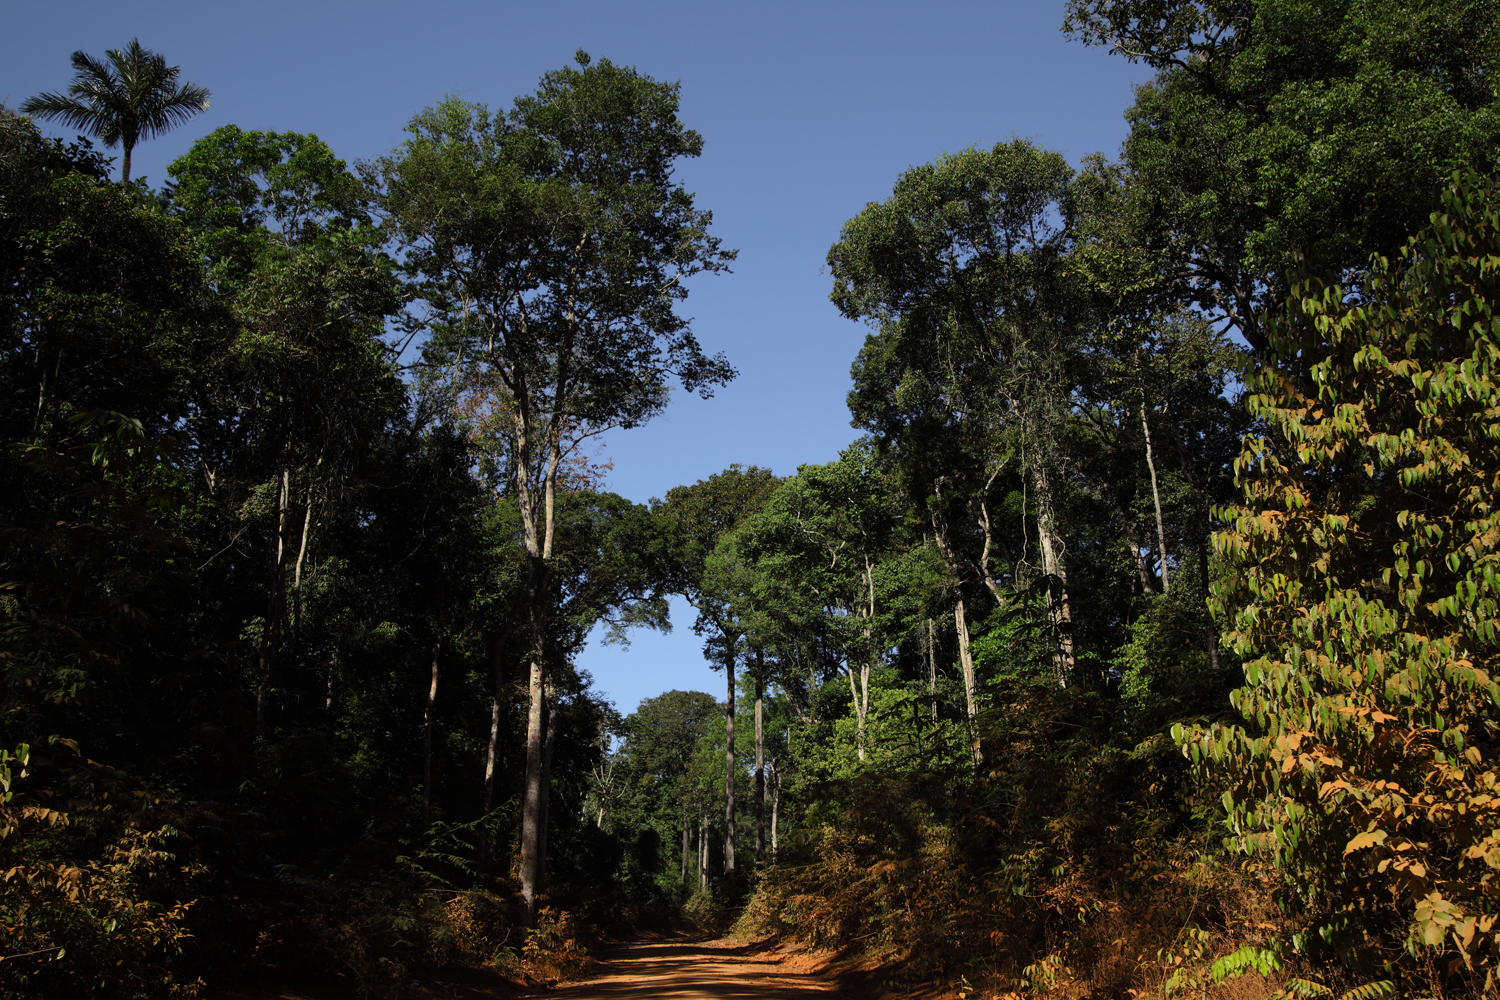 Roads-of-Amazonia-1-copy.jpg